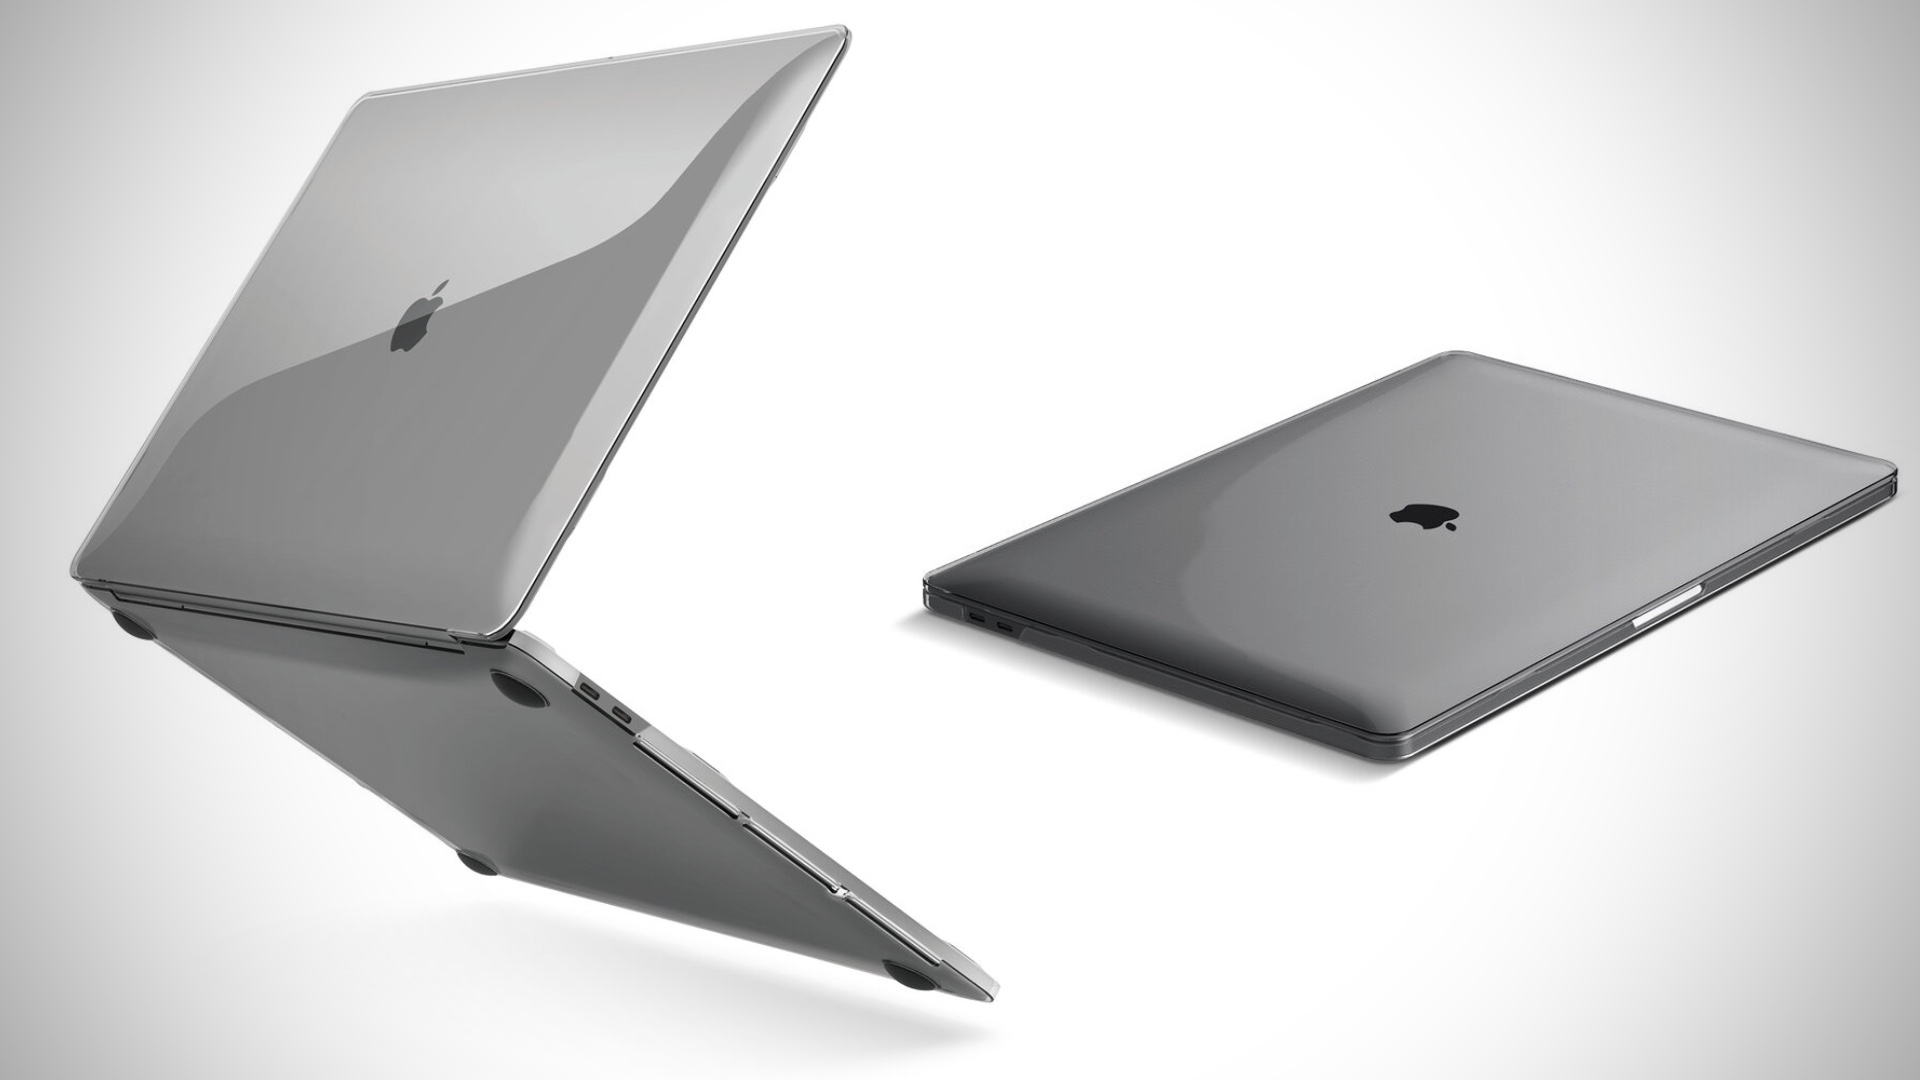 Elago Ultra Slim Hard Case for MacBook provides protection that won't weigh you down